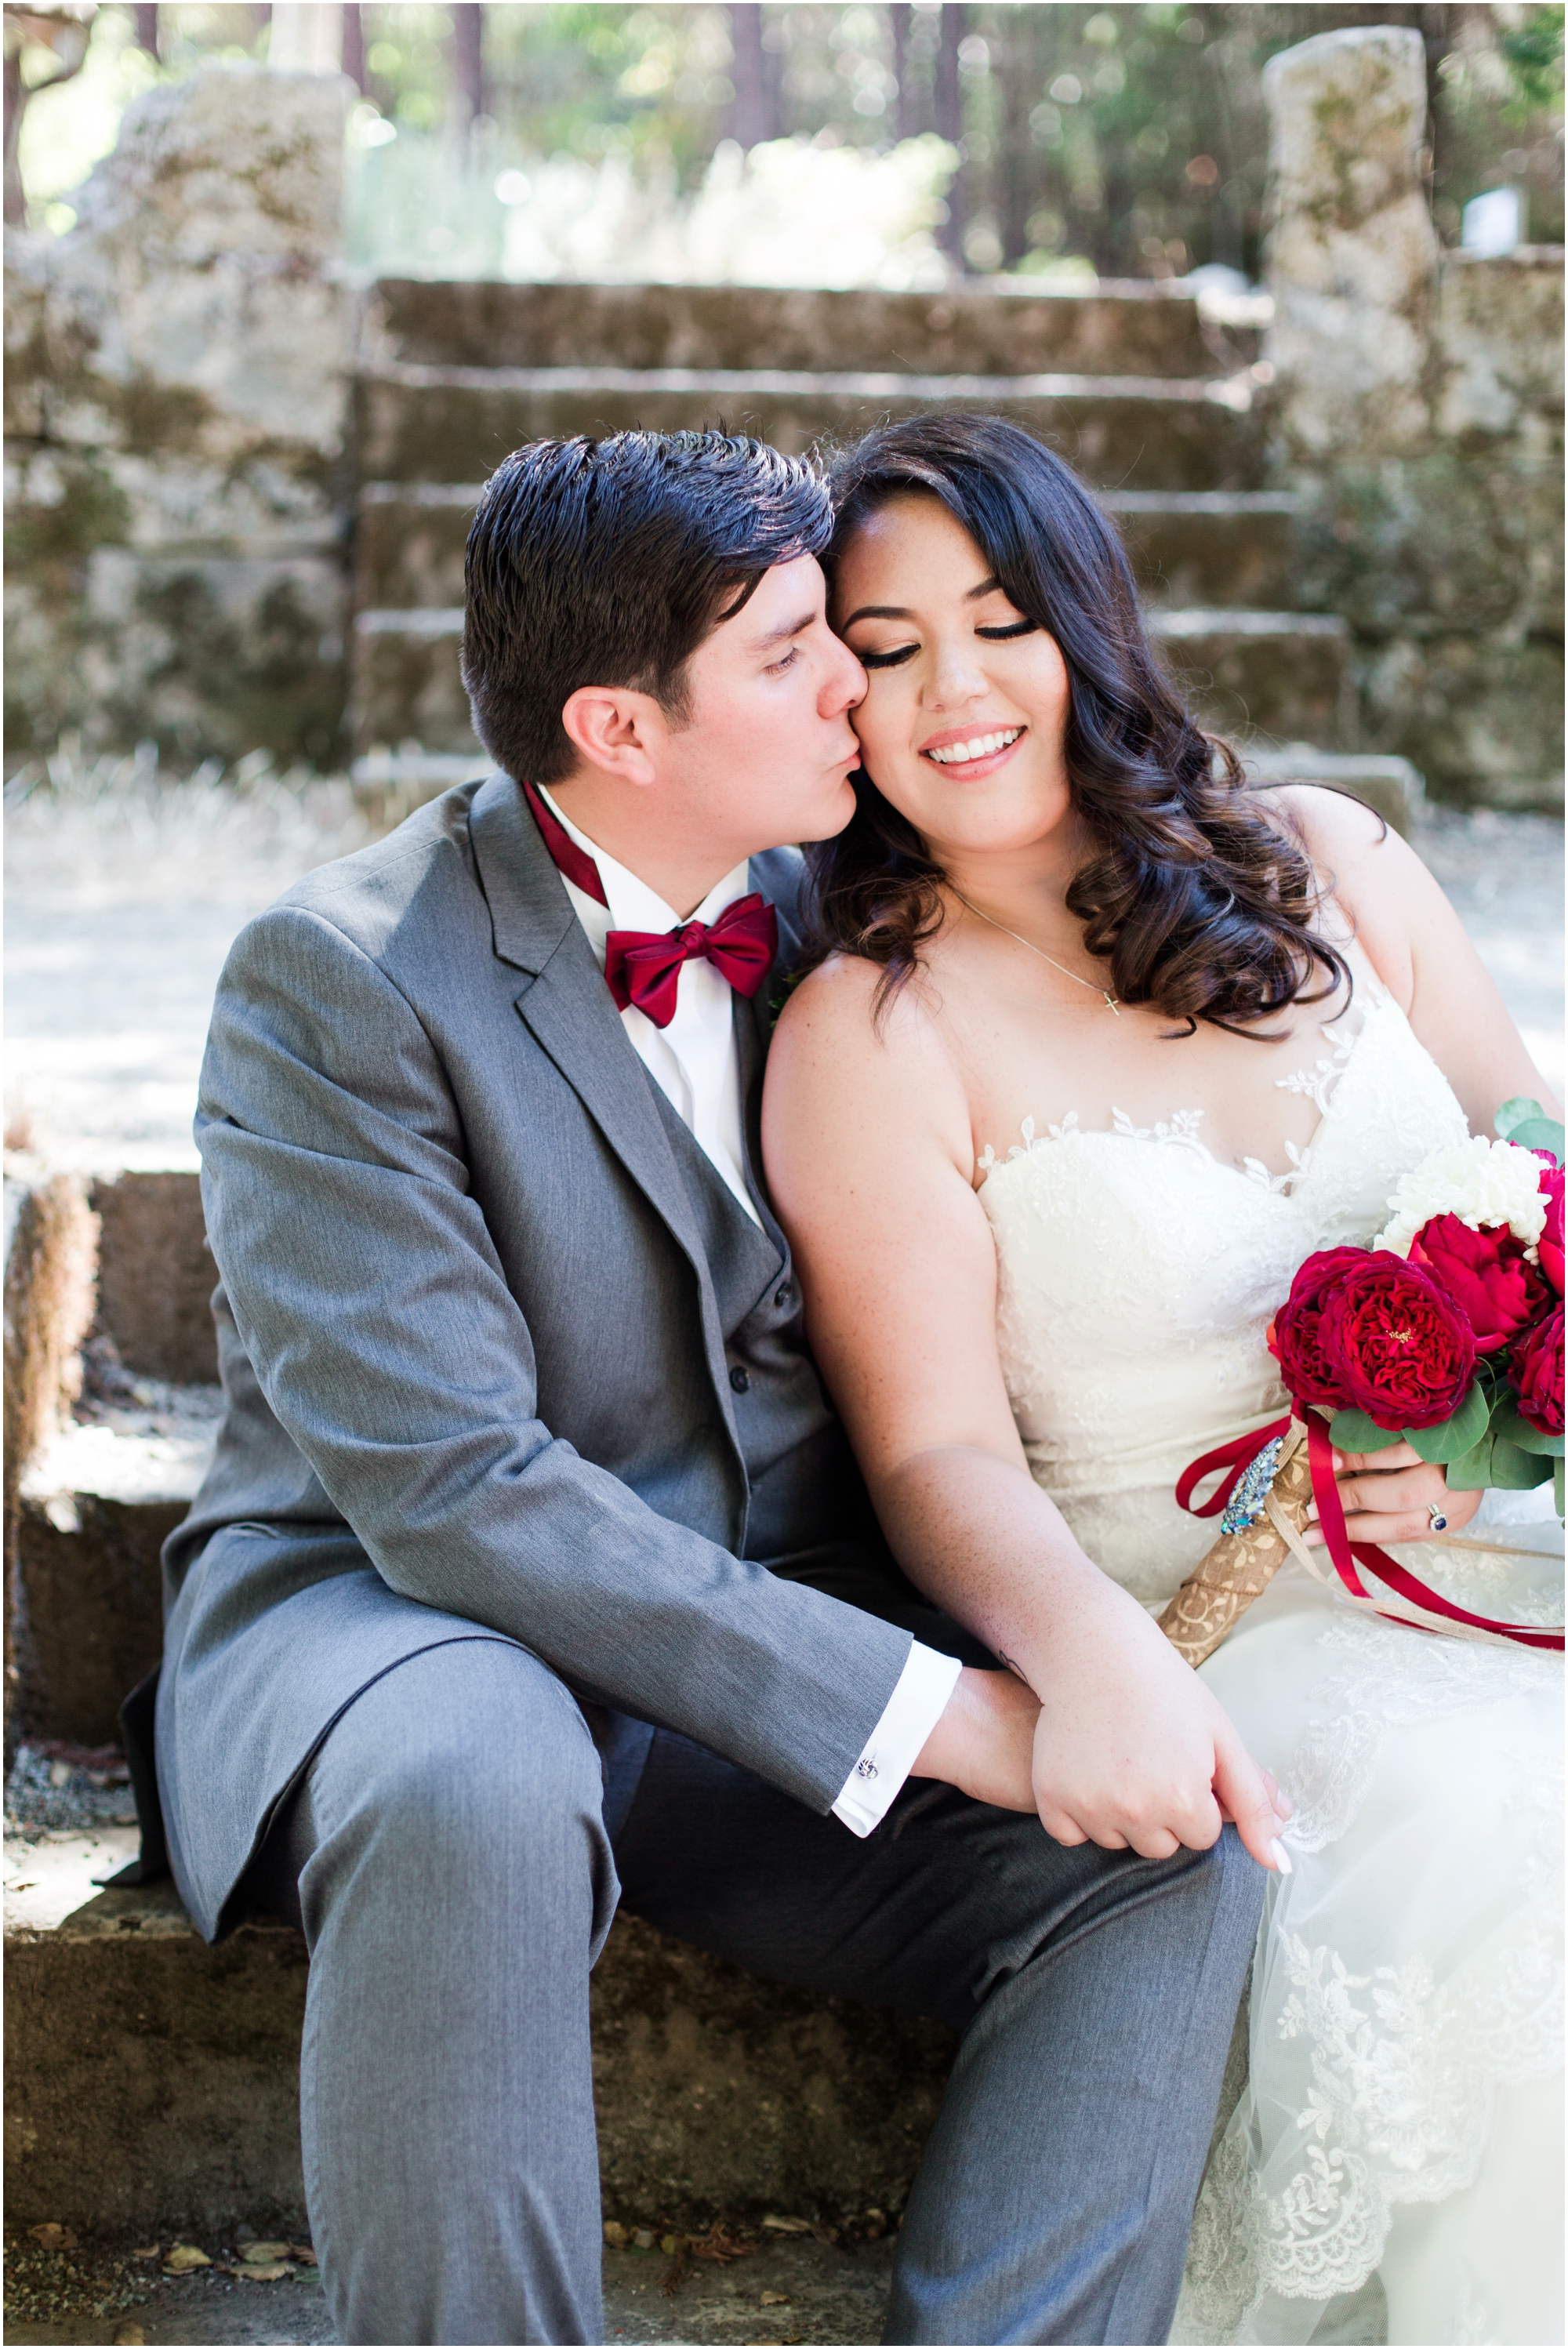 Sanborn Park Saratoga wedding pictures by Briana Calderon Photography_0148.jpg